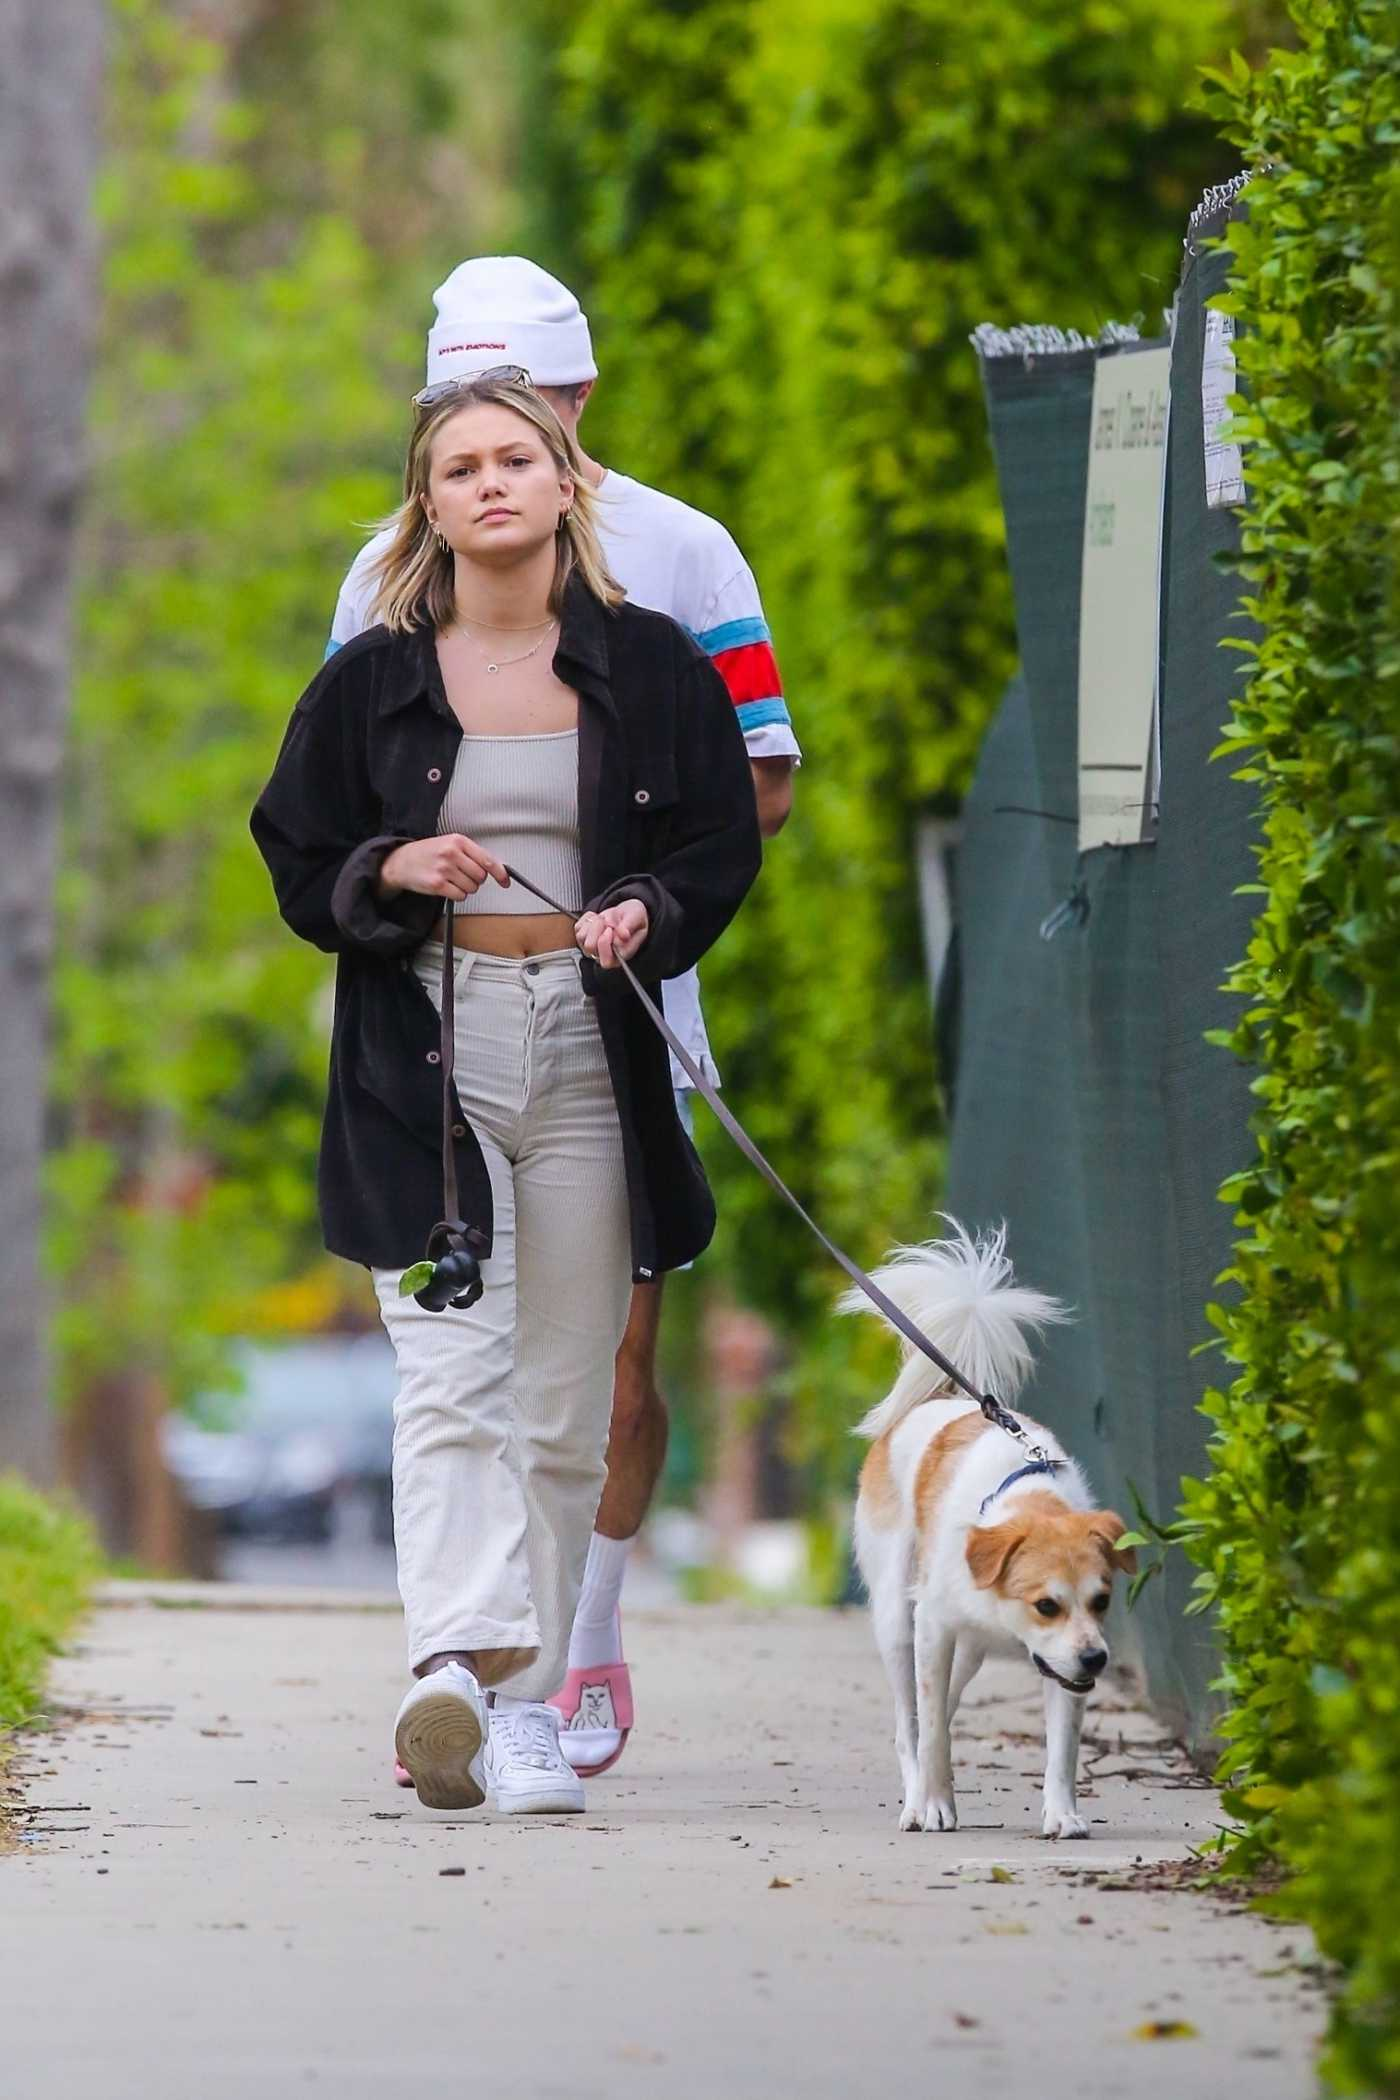 Olivia Holt in a Black Oversized Shirt Walks Her Dog in Los Angeles 03/31/2020